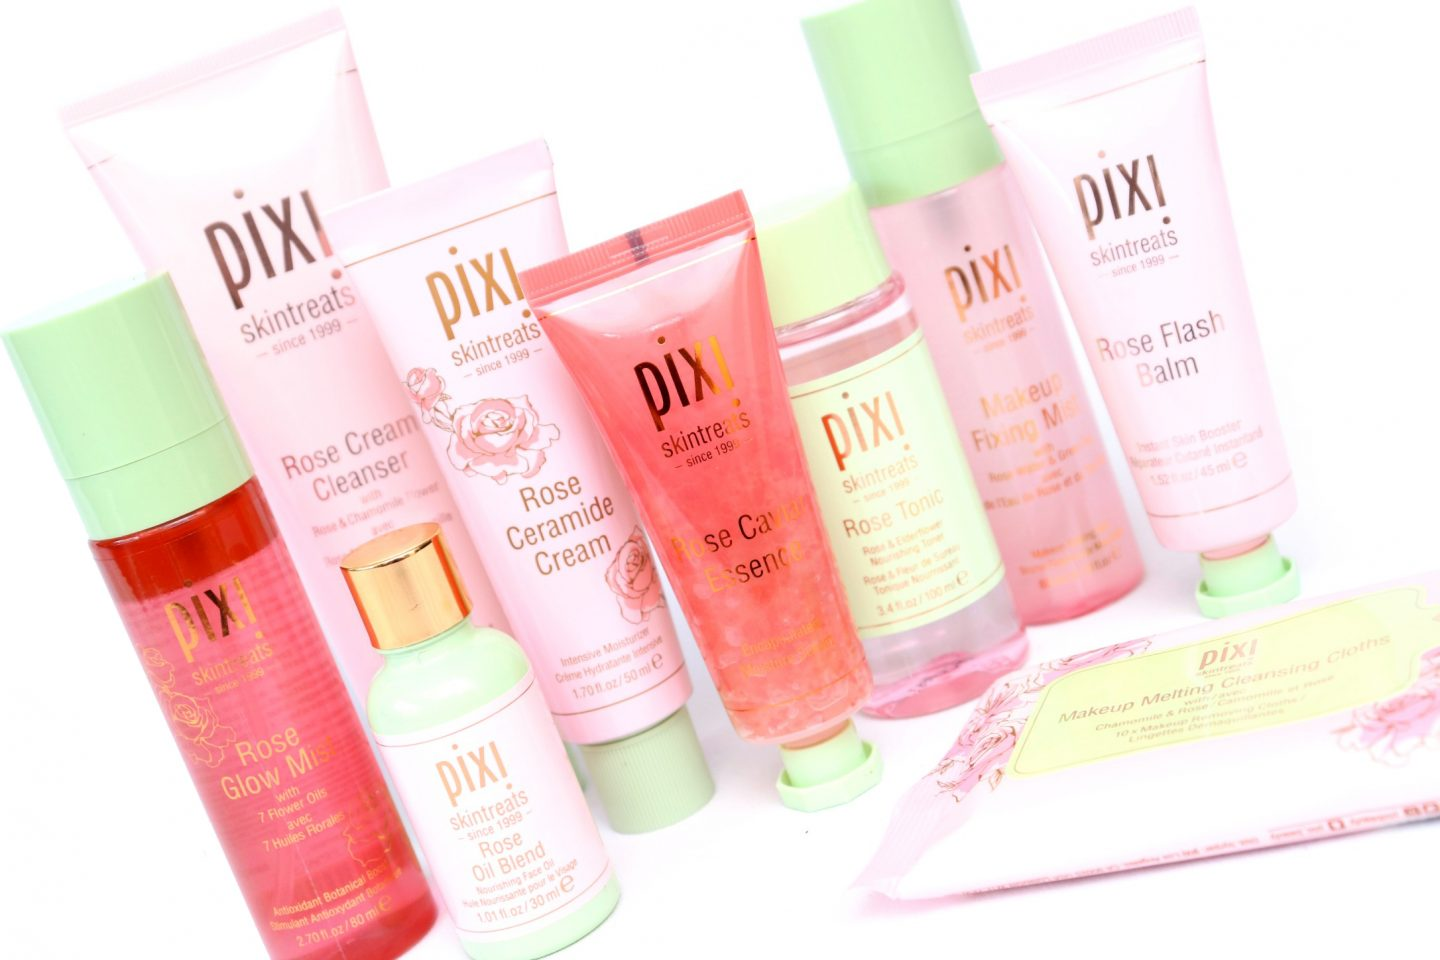 Pixi Rose Infused Skintreats Collection Review